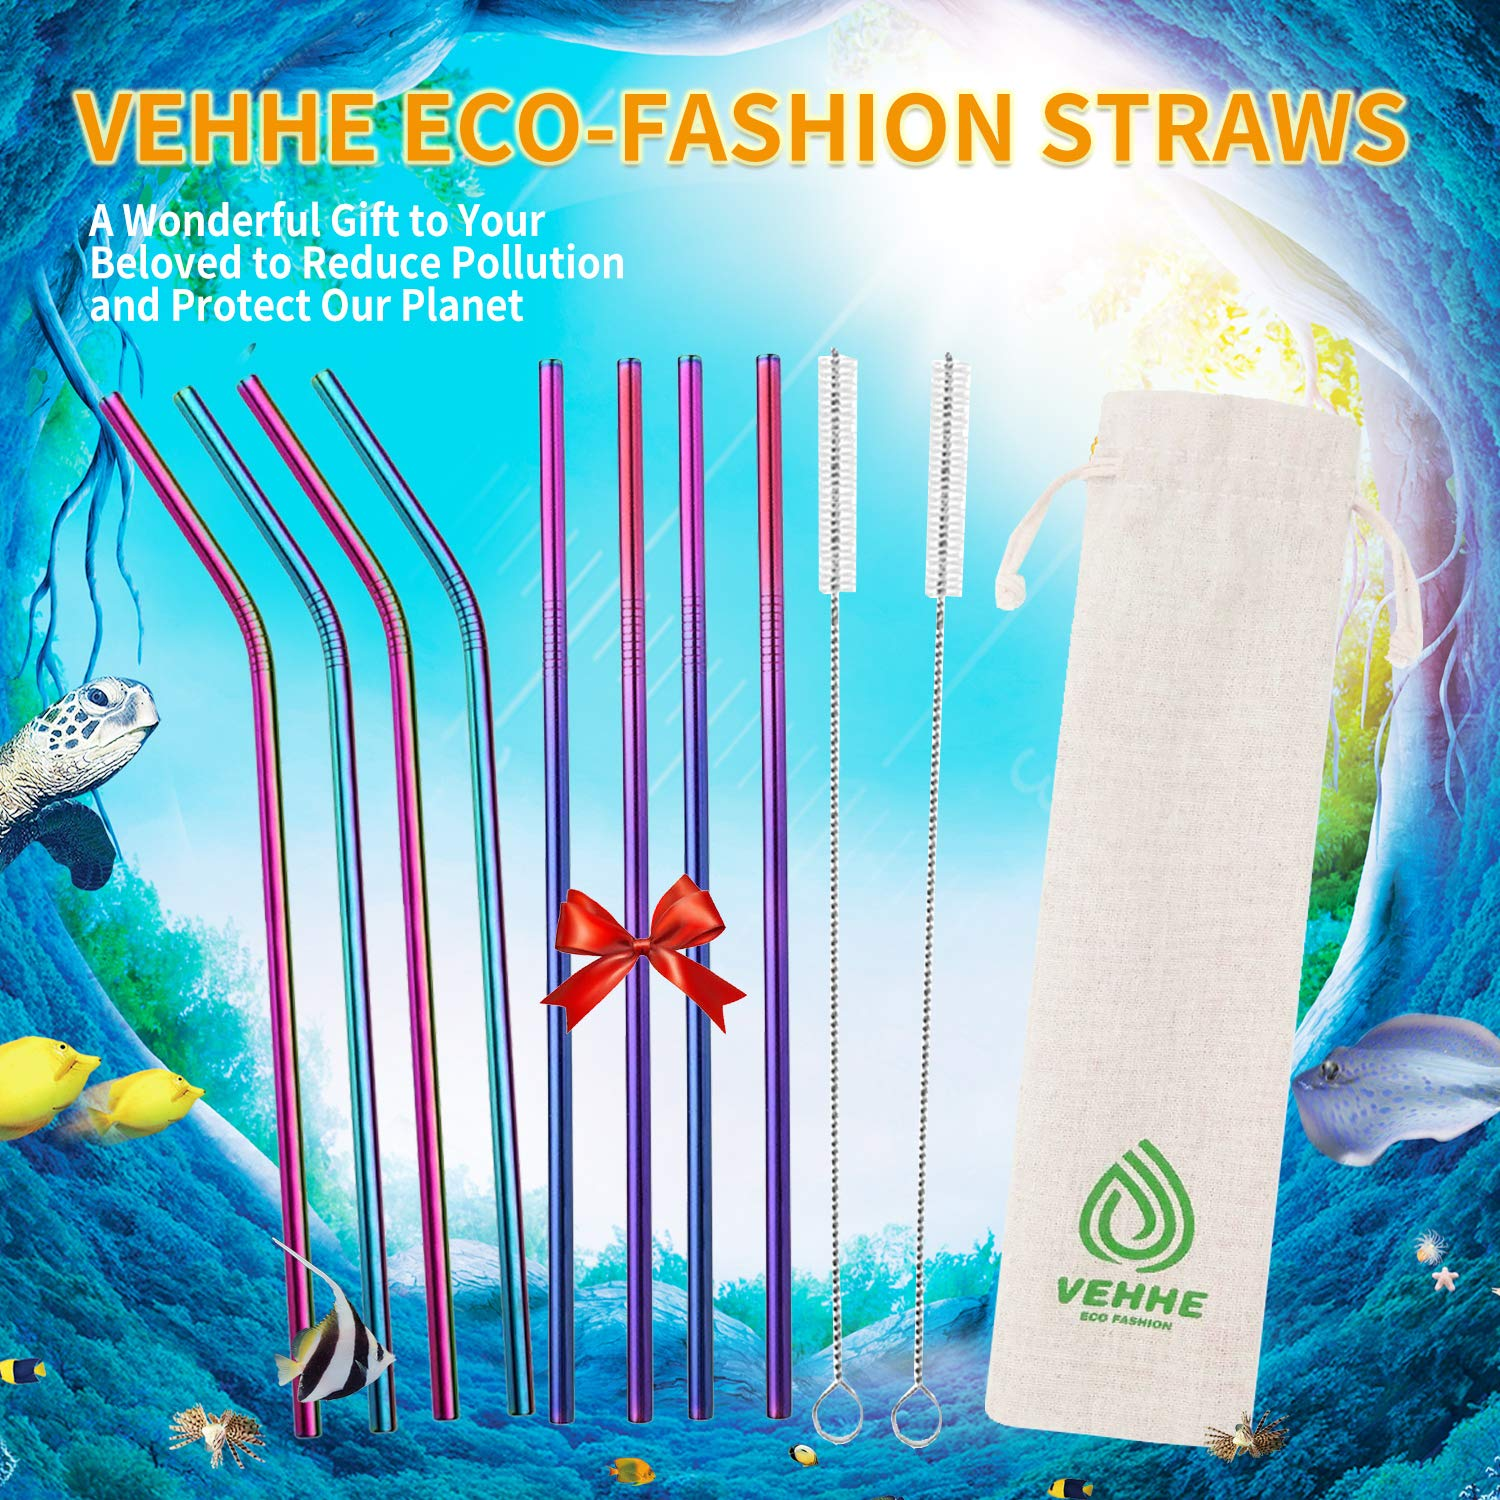 VEHHE Metal Straws Stainless Steel Straws 8 Set Reusable Drinking Rainbow Straws with Cleaning Brush for 20 OZ Tumblers(4 Straight + 4 Bent + 2 Brush) by VEHHE (Image #3)